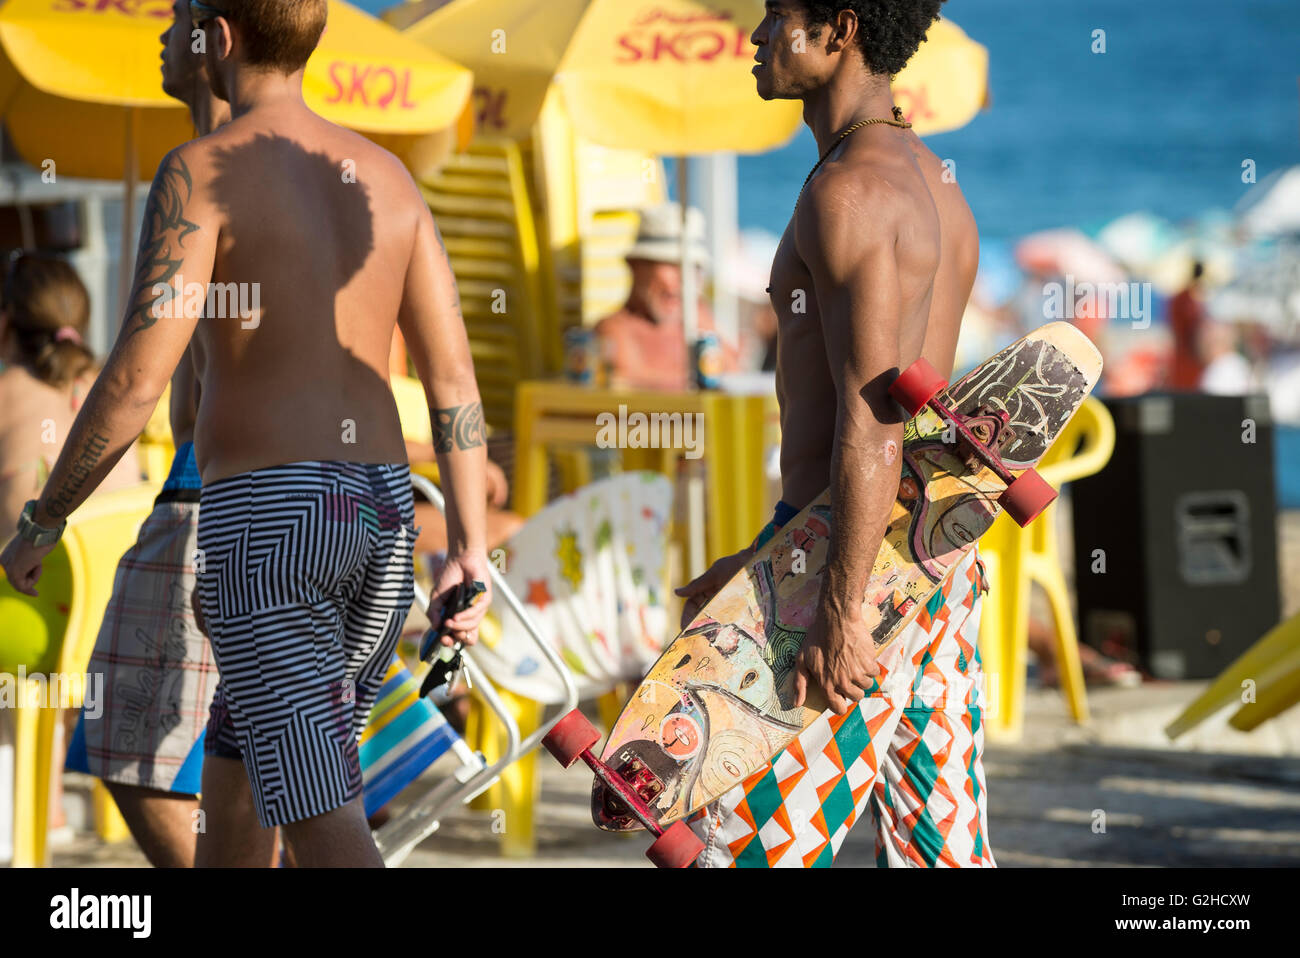 RIO DE JANEIRO - MARCH 6, 2016: Carioca Brazilians walk in front of a yellow kiosk on the beachfront boardwalk at - Stock Image